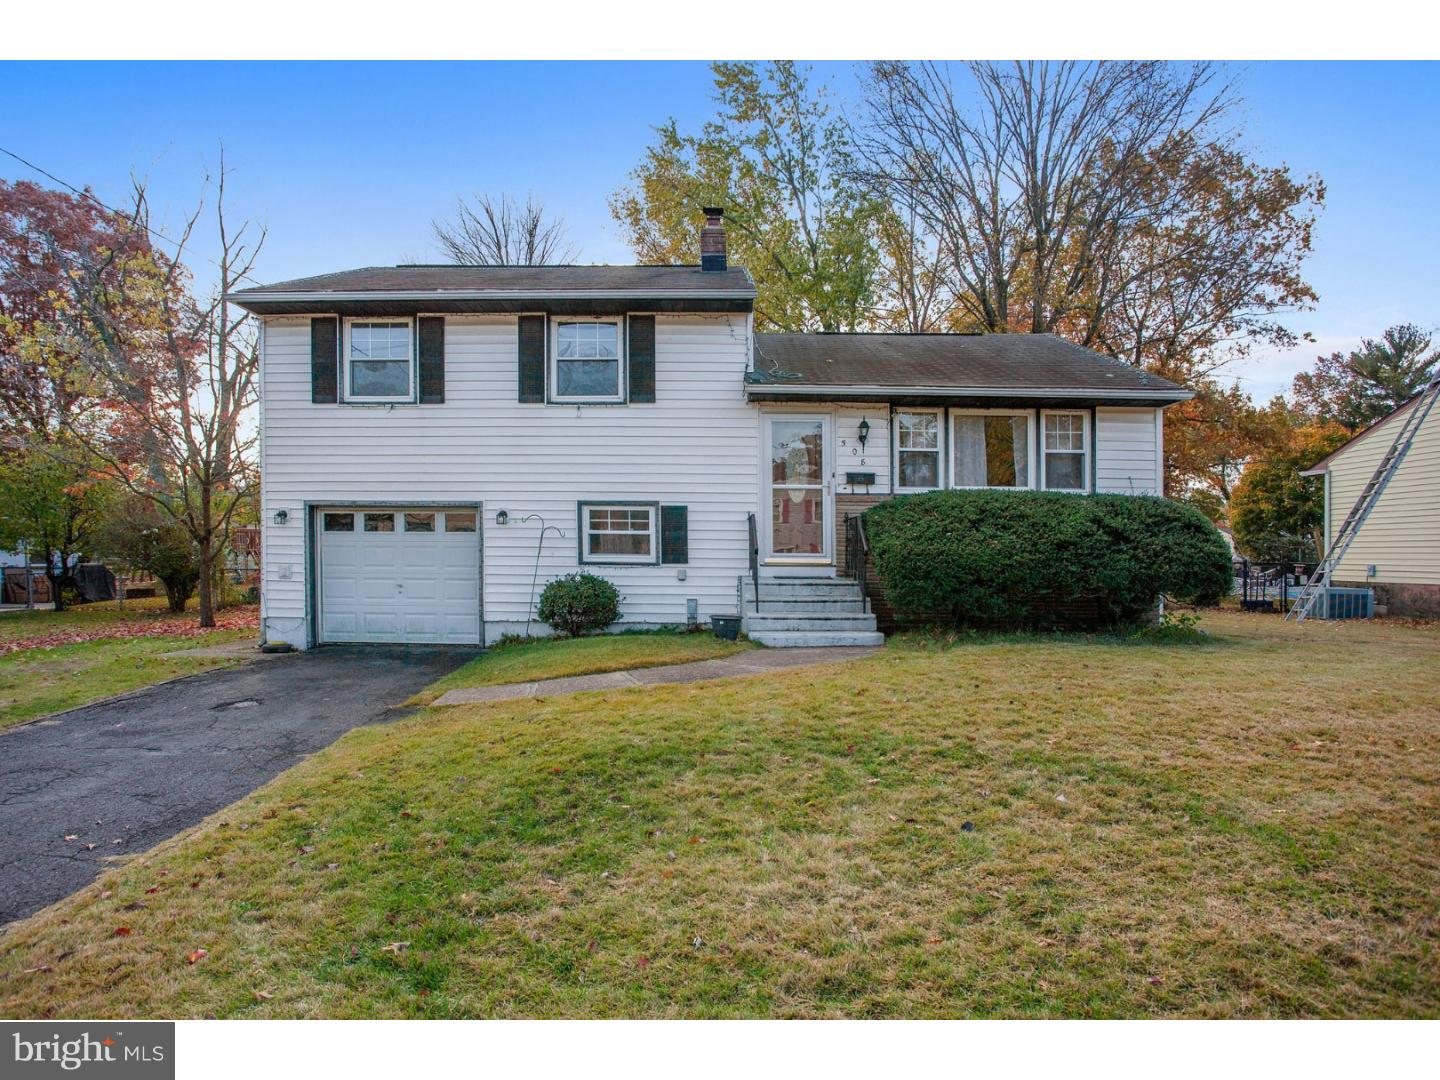 Single Family Home for Sale at 508 8TH Street Riverside, New Jersey 08075 United States